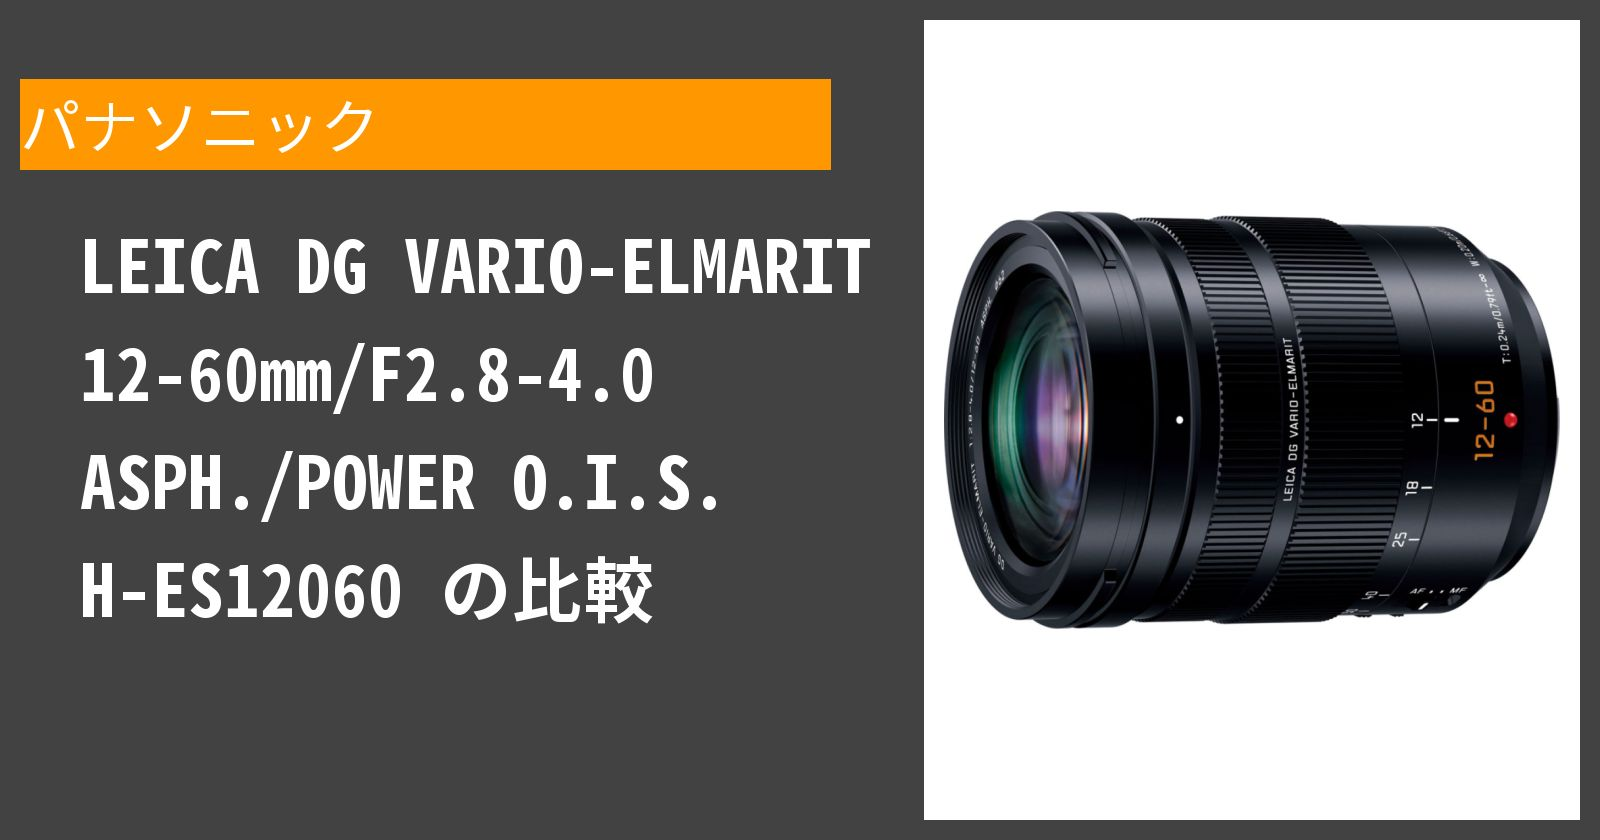 LEICA DG VARIO-ELMARIT 12-60mm/F2.8-4.0 ASPH./POWER O.I.S. H-ES12060を徹底評価